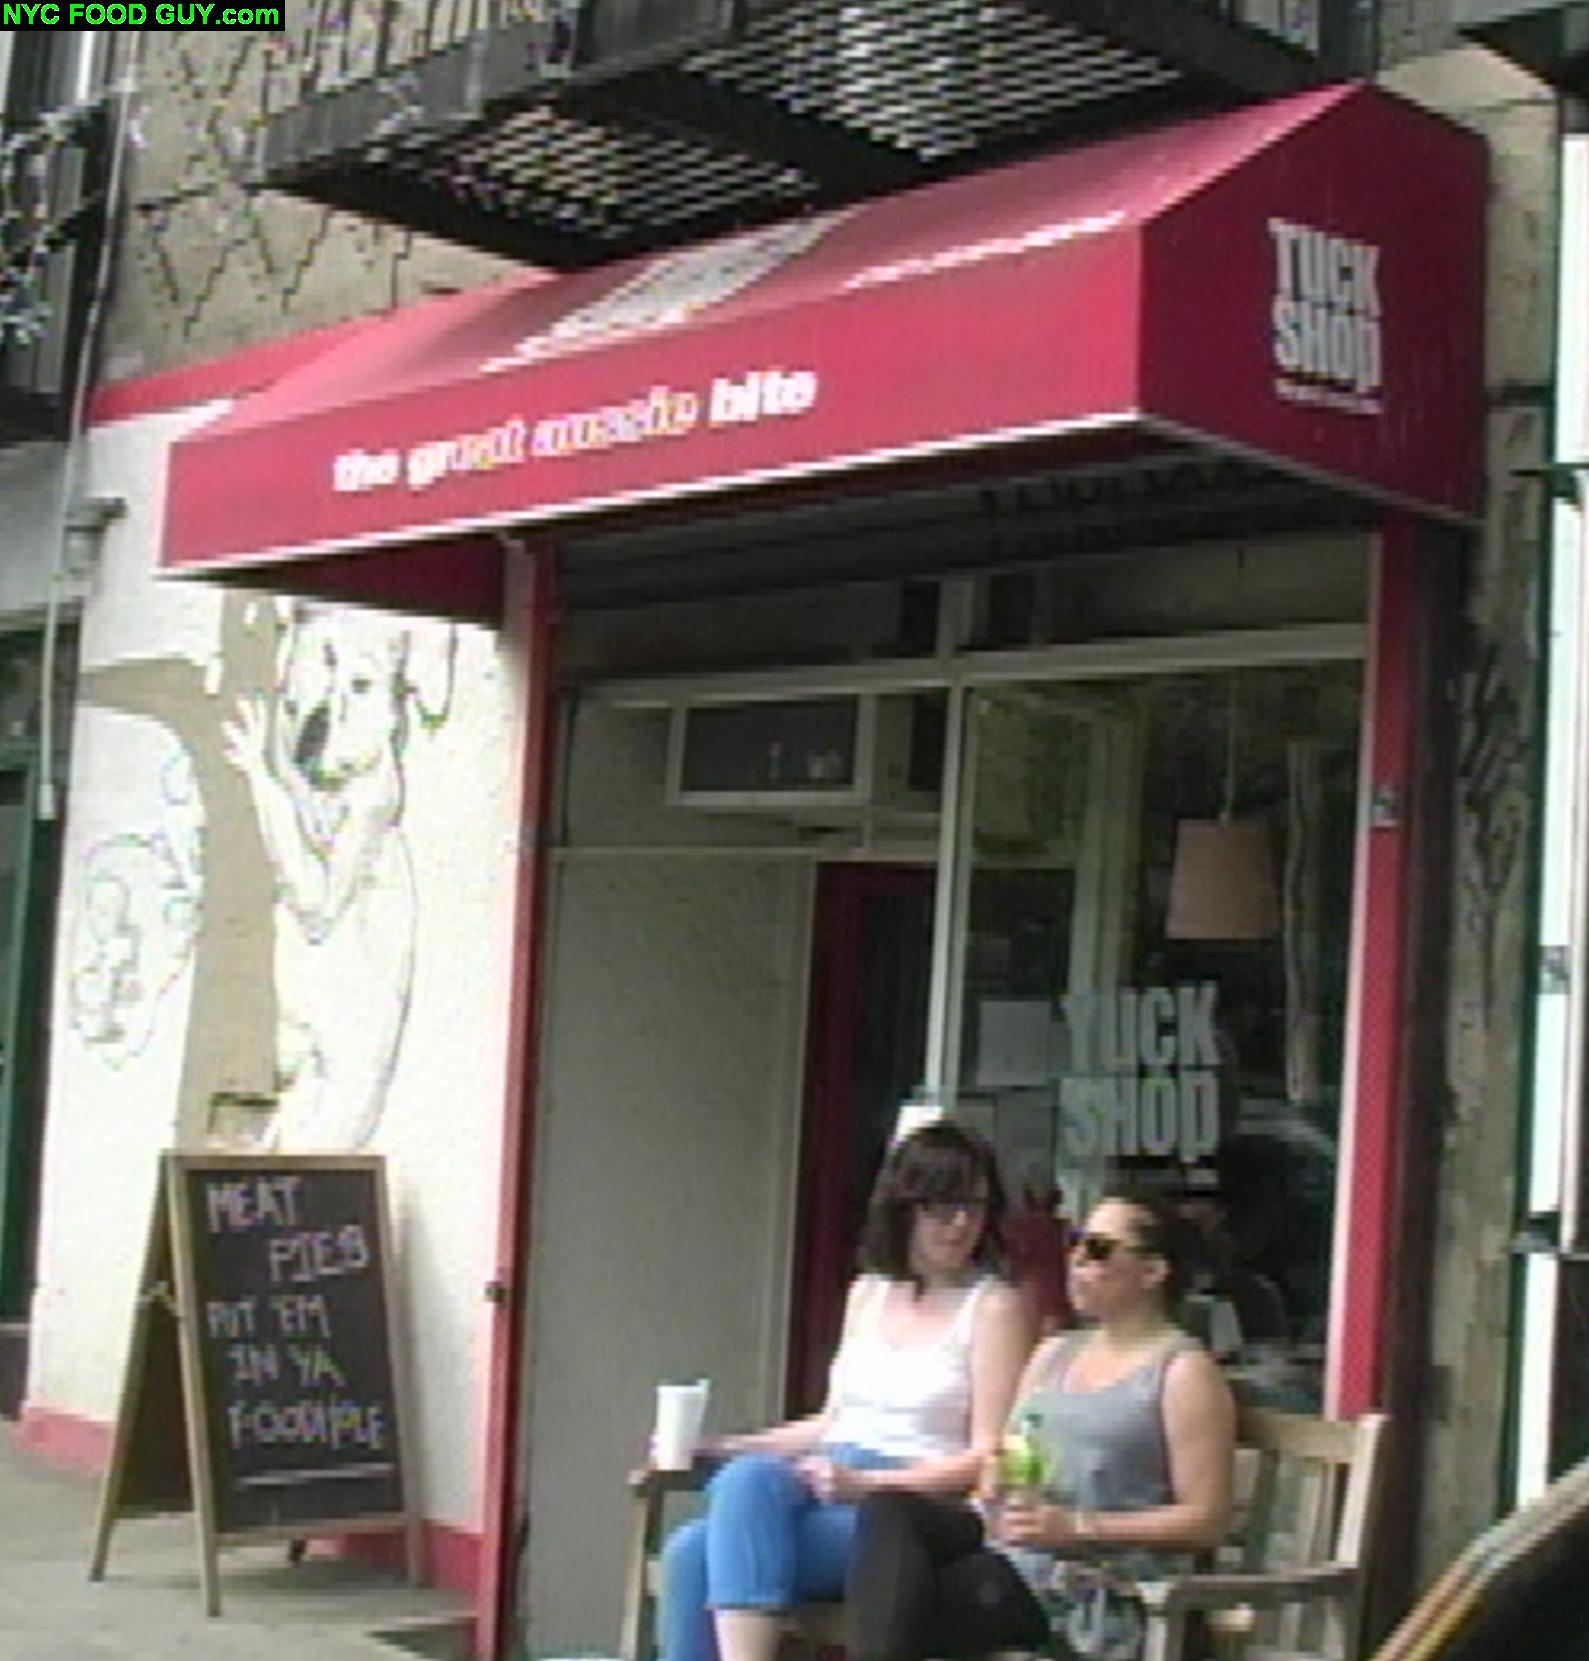 Tuck Shop: The Great Aussie Bite   NYC Food Guy